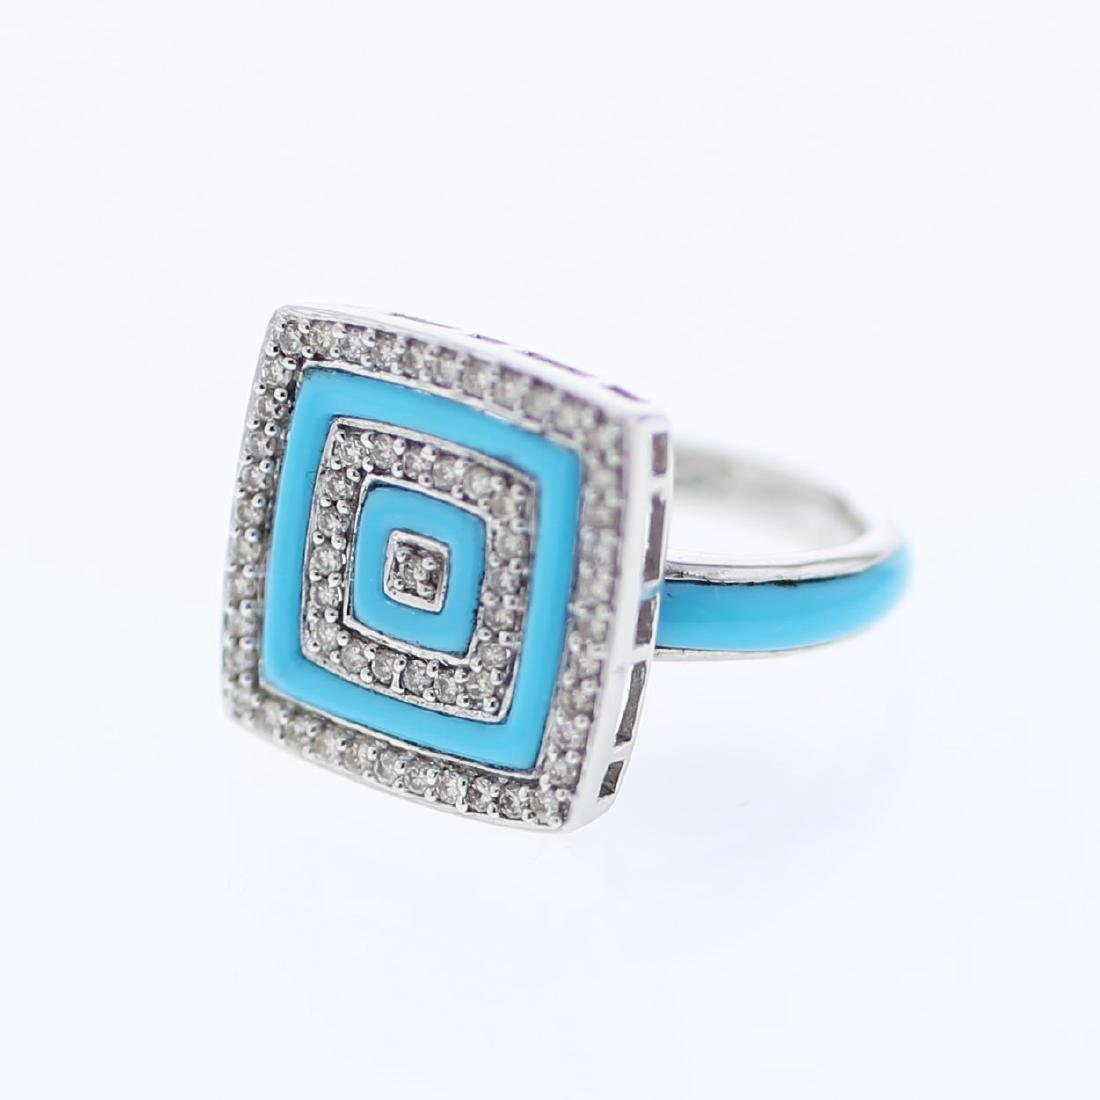 Square Turquoise Inlay w/ Prong-set Diamond Ring in 14K